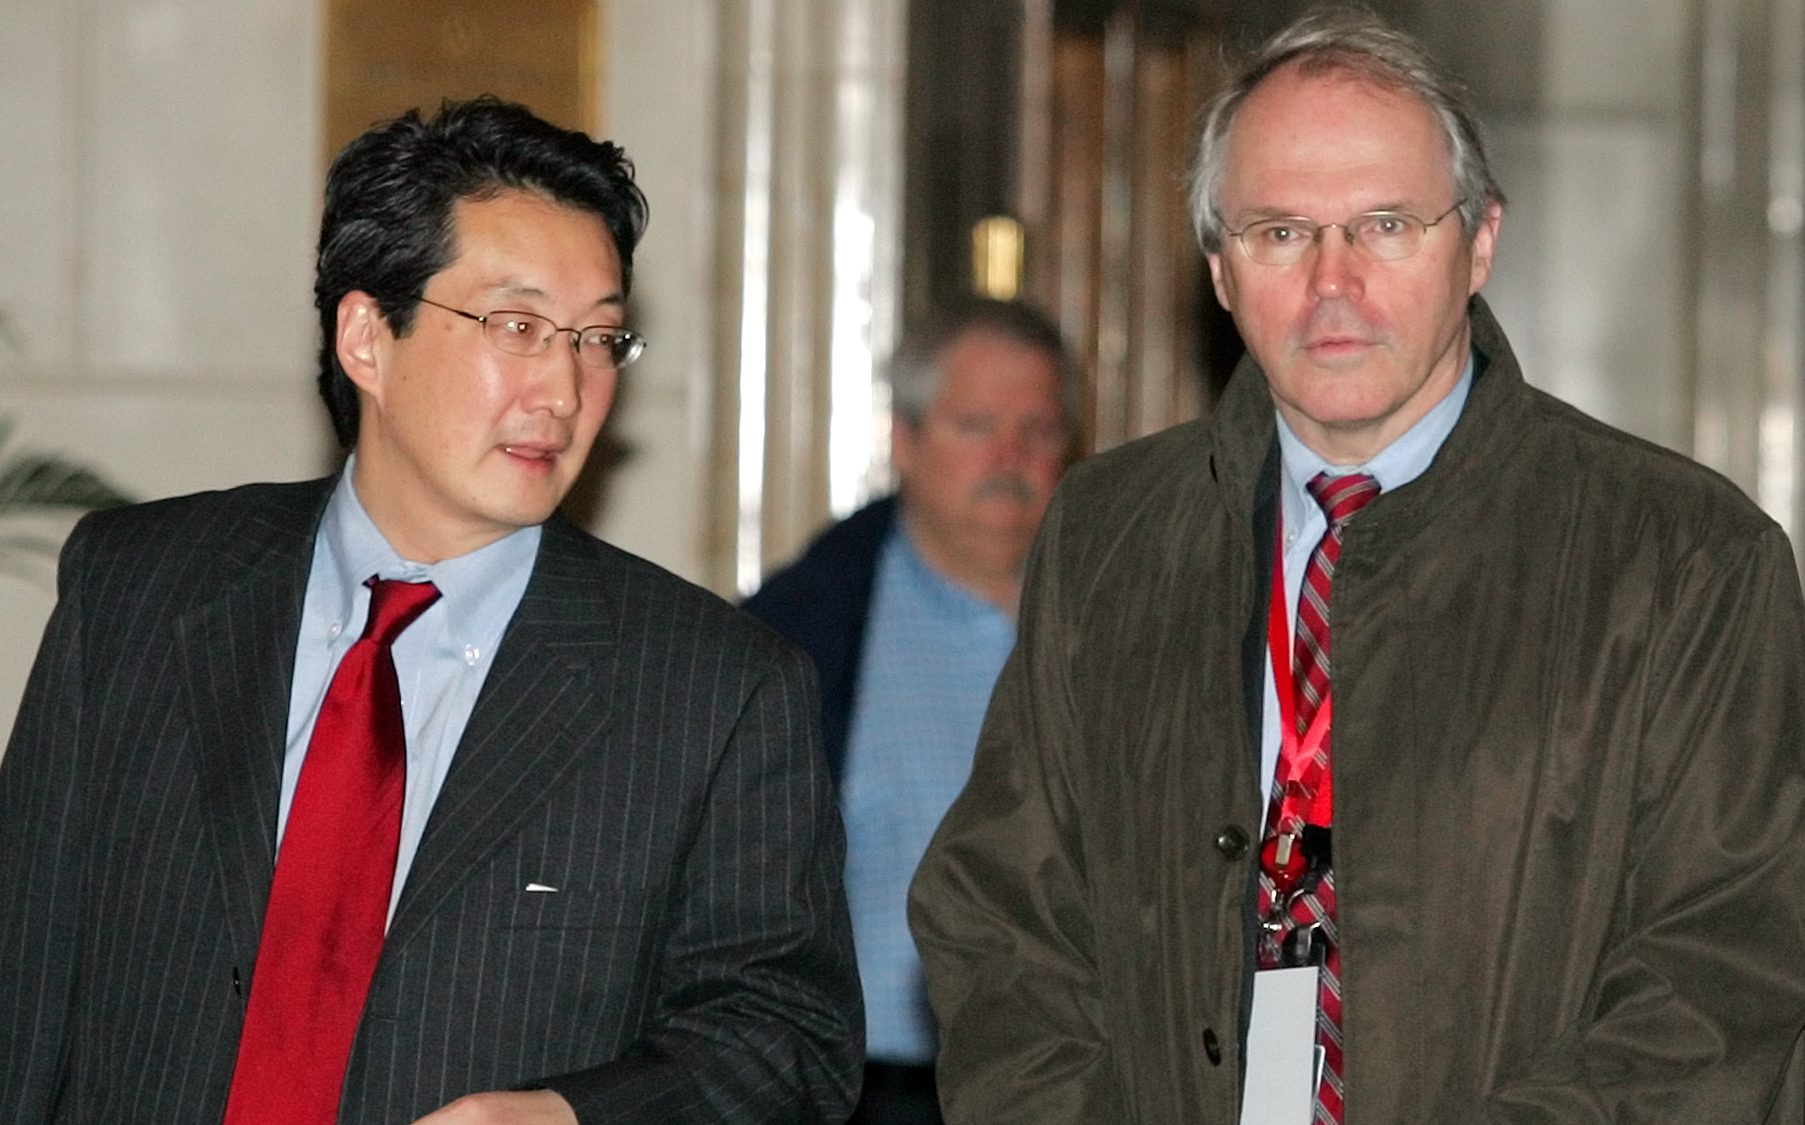 U.S. Assistant Secretary of State Christopher Hill, right, and Victor Cha, the U.S.  National Security Council's director for Asian Affairs, walk through their hotel lobby before heading to a second day of six party talks on North Korea's nuclear program, in Beijing Tuesday March 20, 2007.